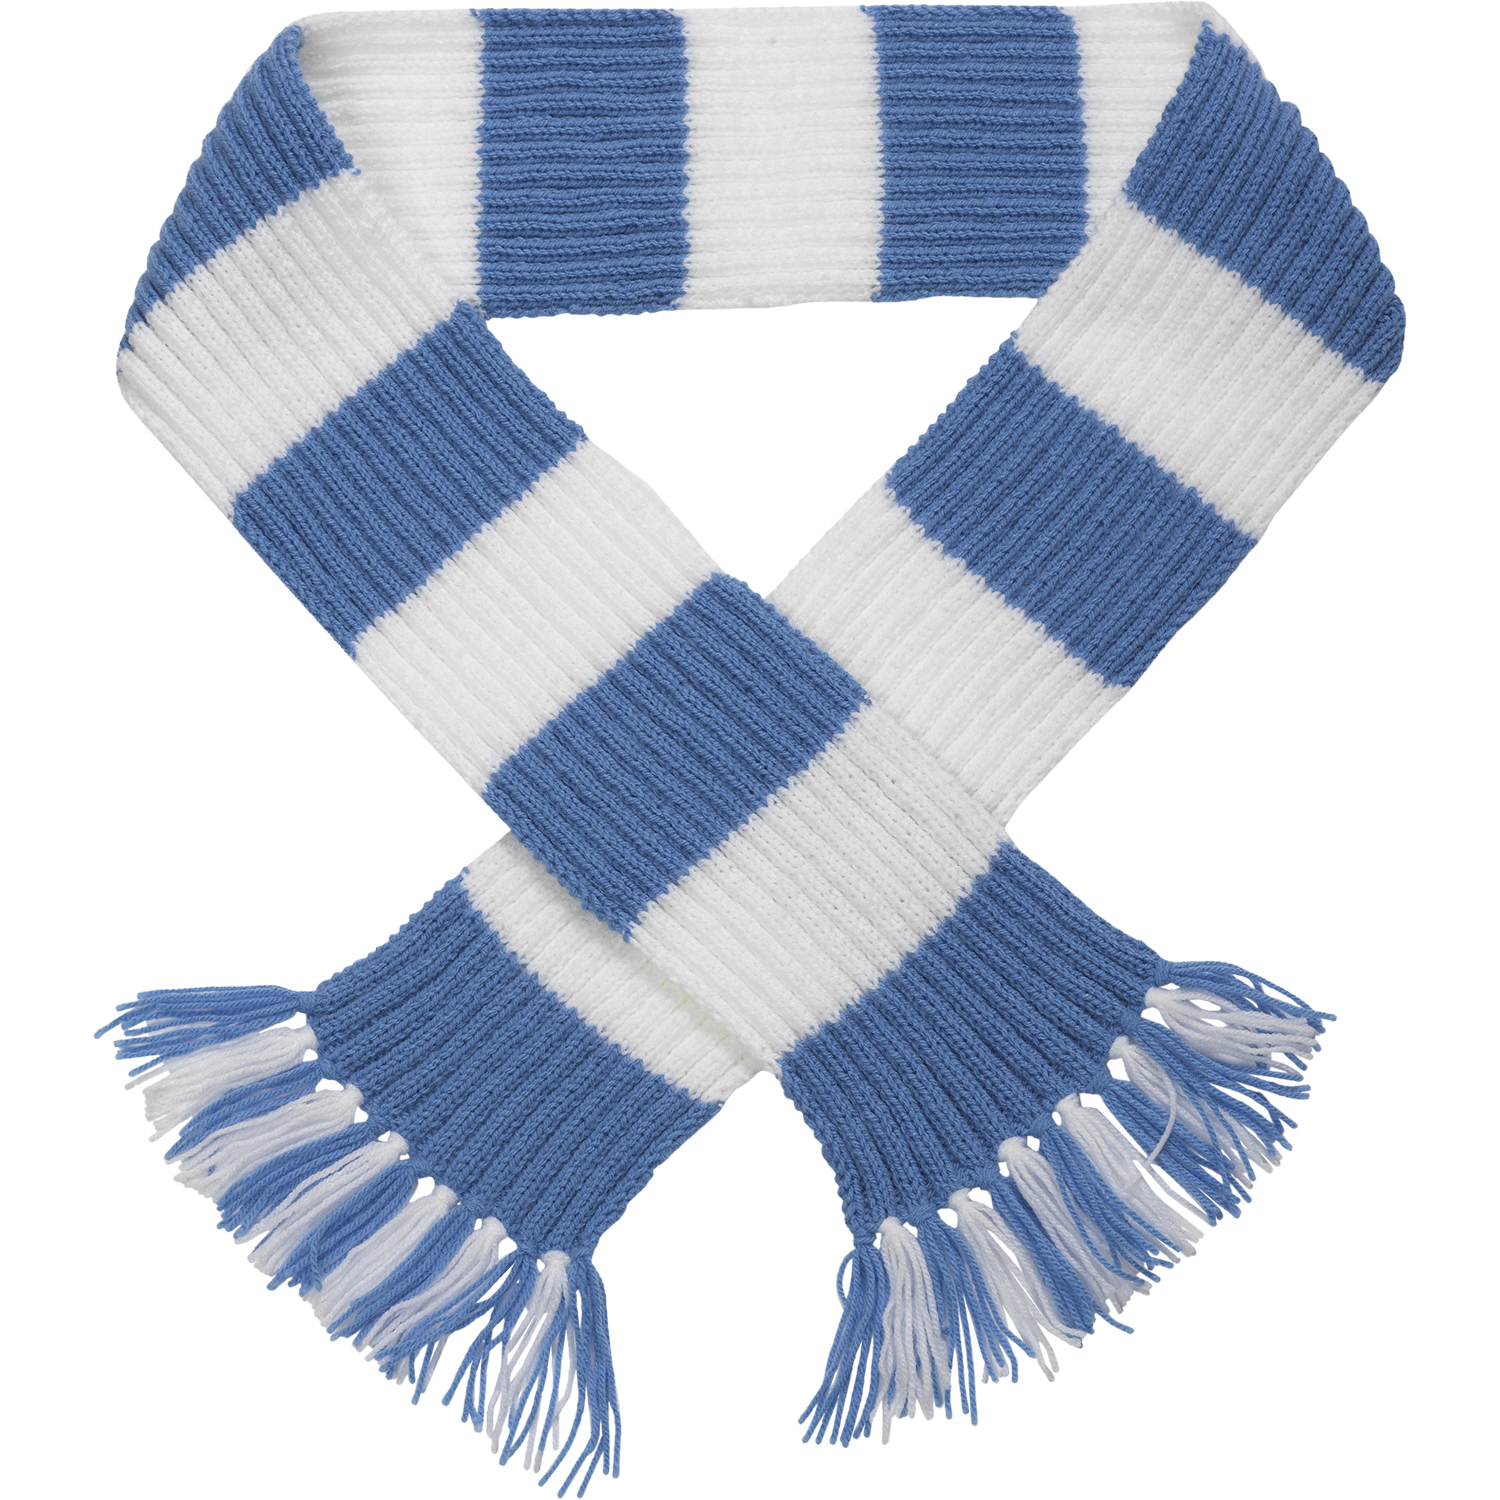 Knit Striped Scarf Pattern : Craft Hobby Knitted Scarf Kit Football & Rugby DK Double Knitting Pattern...